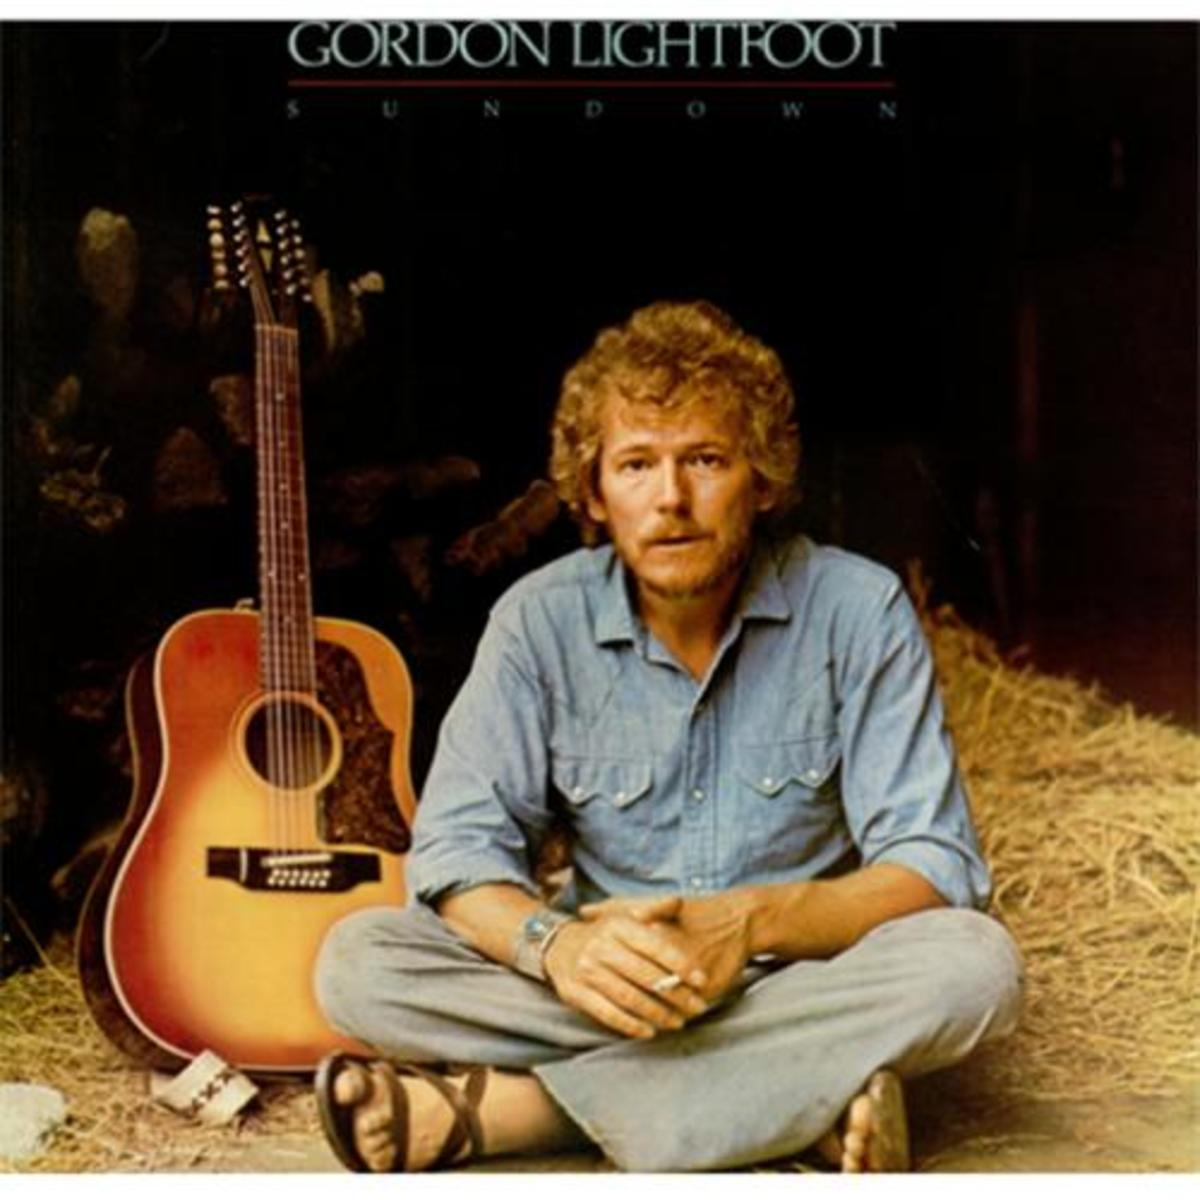 Gordon Lightfoot, Guitars and Songwriting.